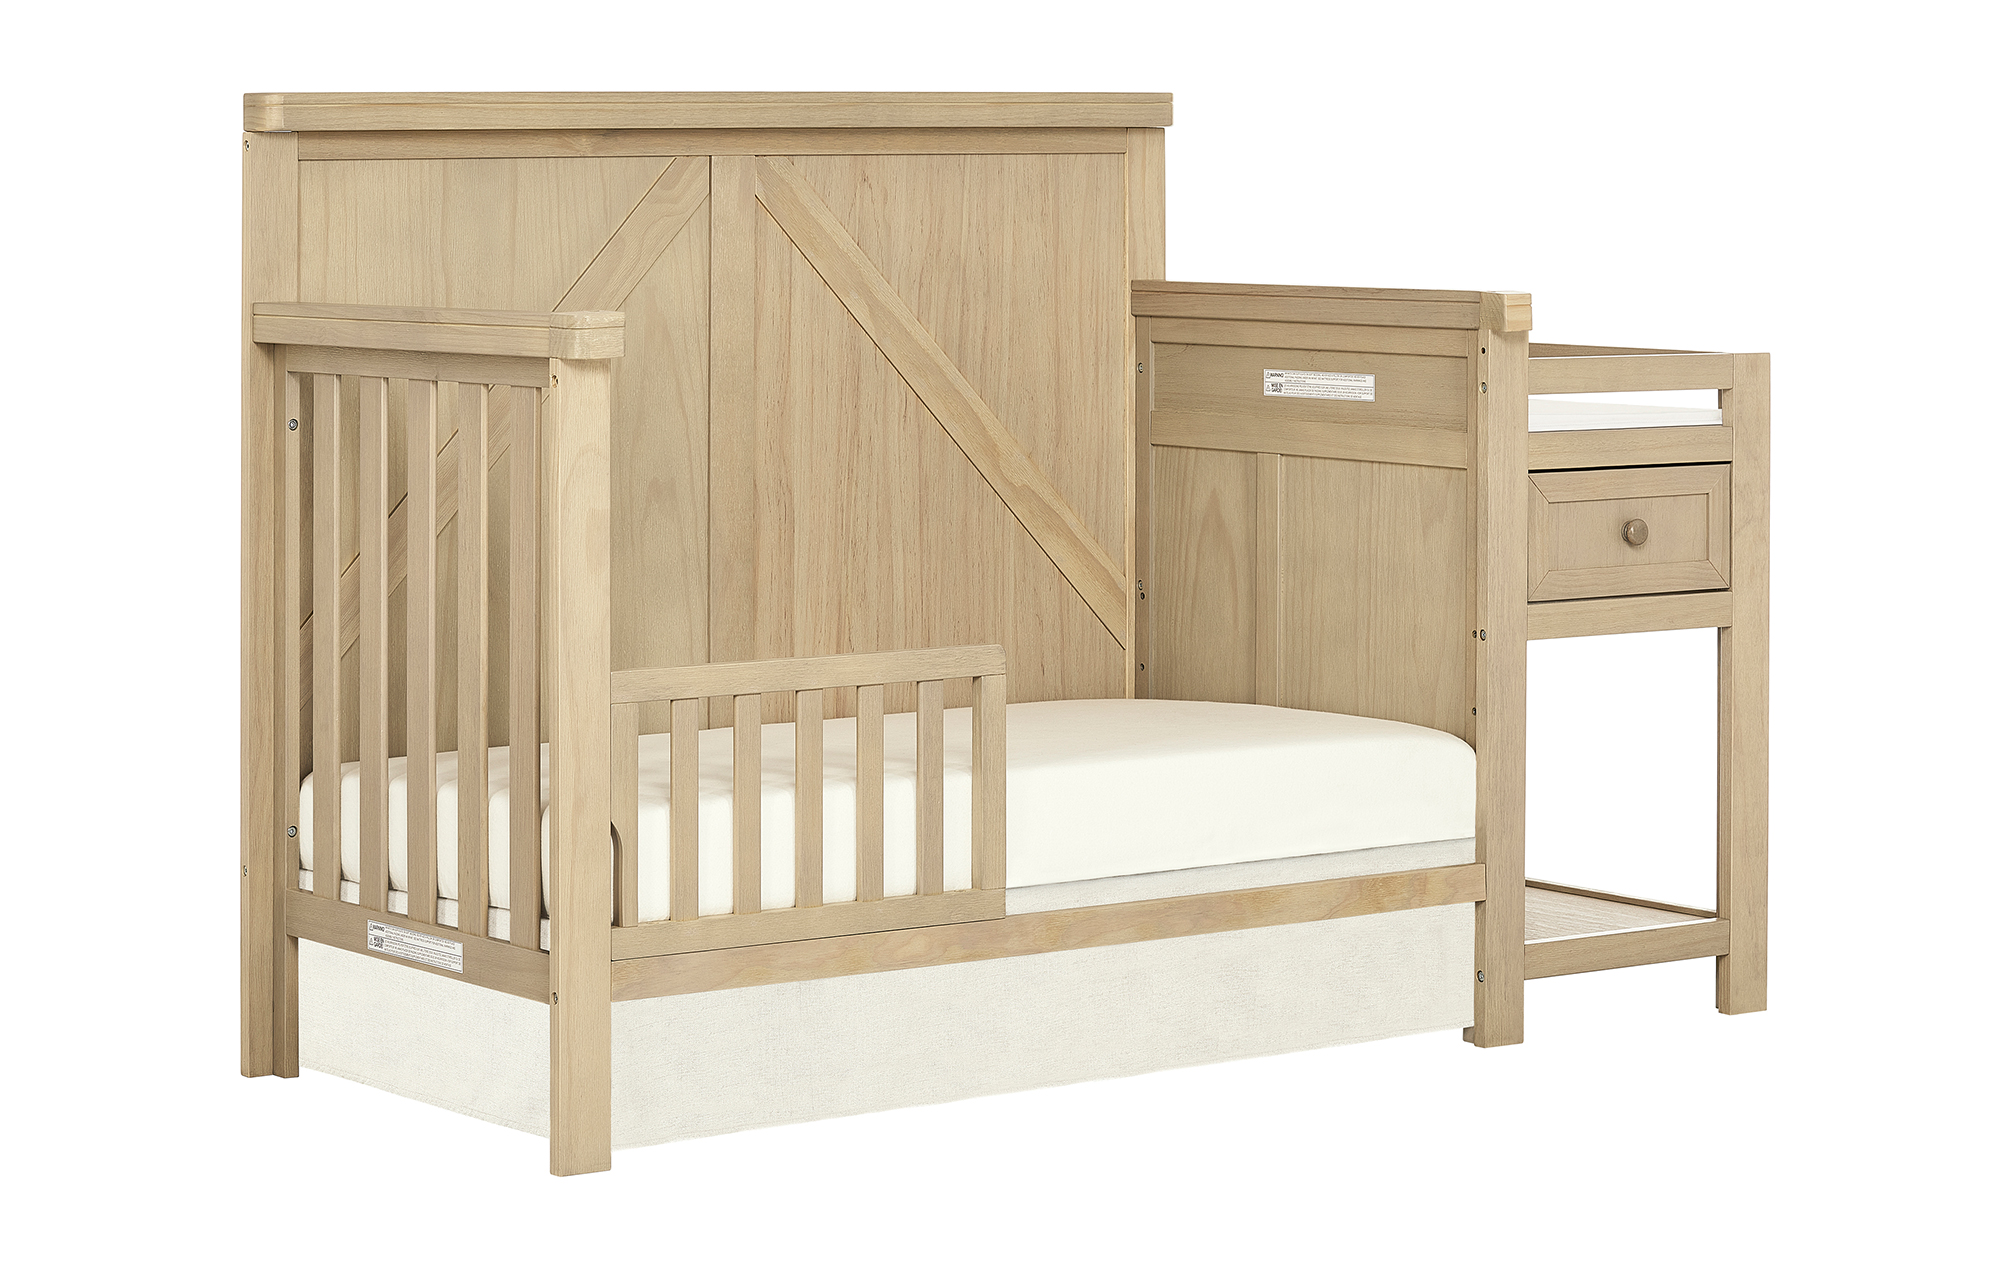 773-SC Meadowland Toddler Bed